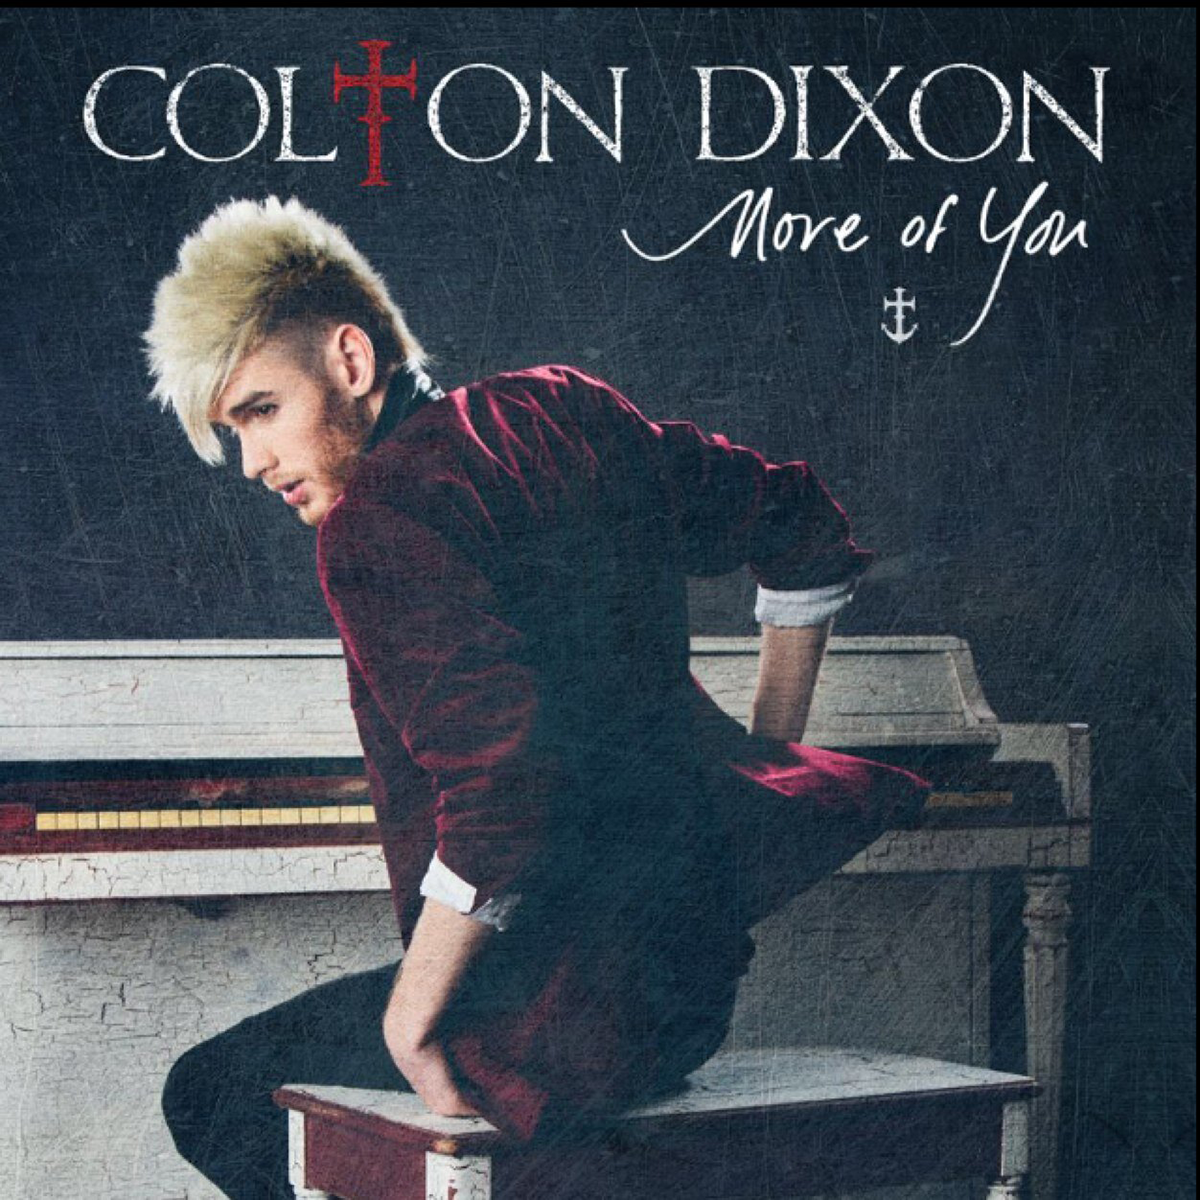 Colton-Dixon-More-of-You-2014-1200x1200.png